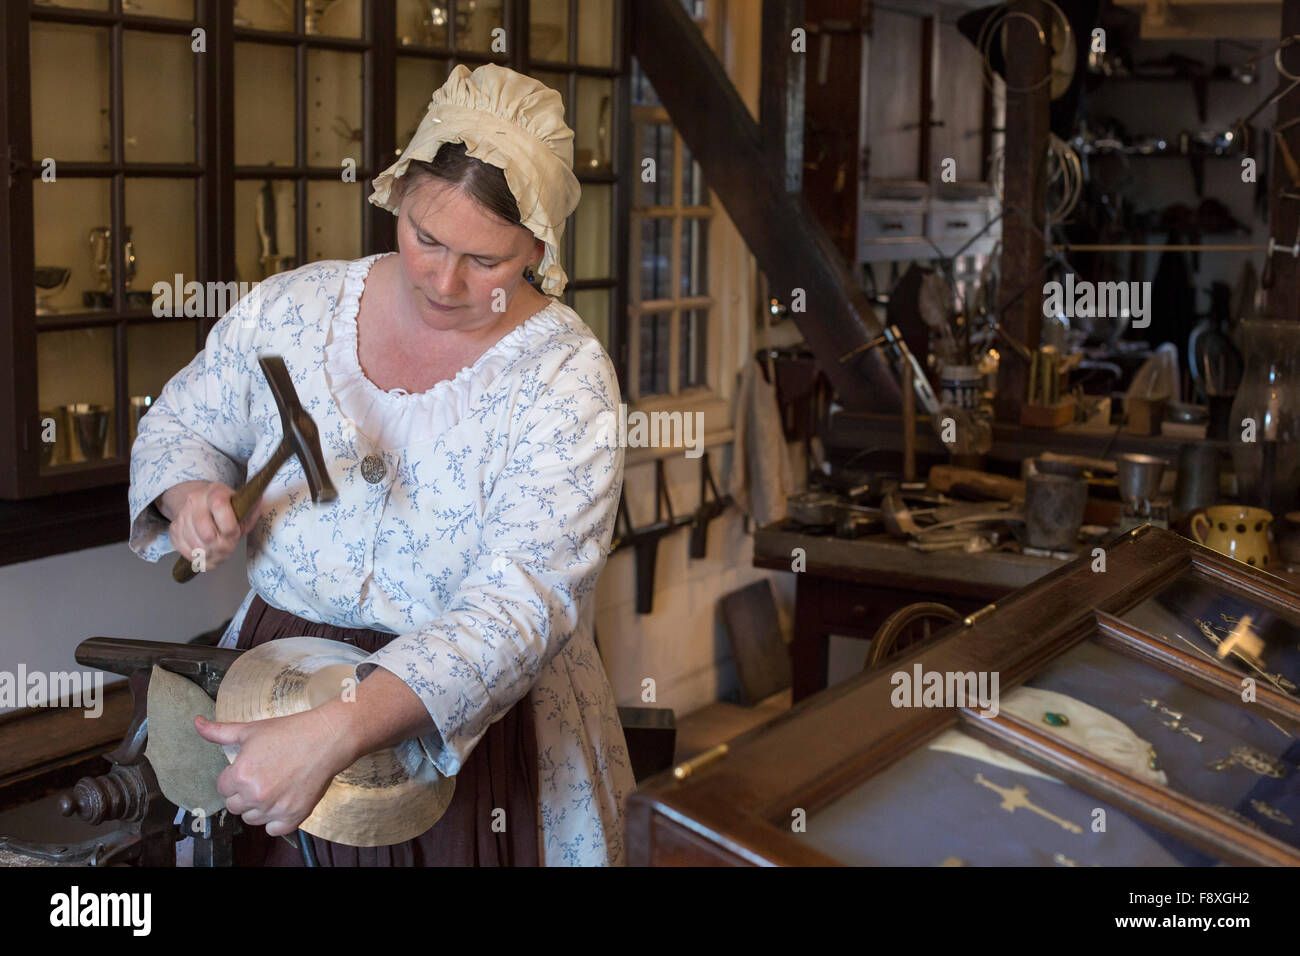 Williamsburg, Virginia - A costumed living history artisan works in the silversmith shop at Colonial Williamsburg. - Stock Image